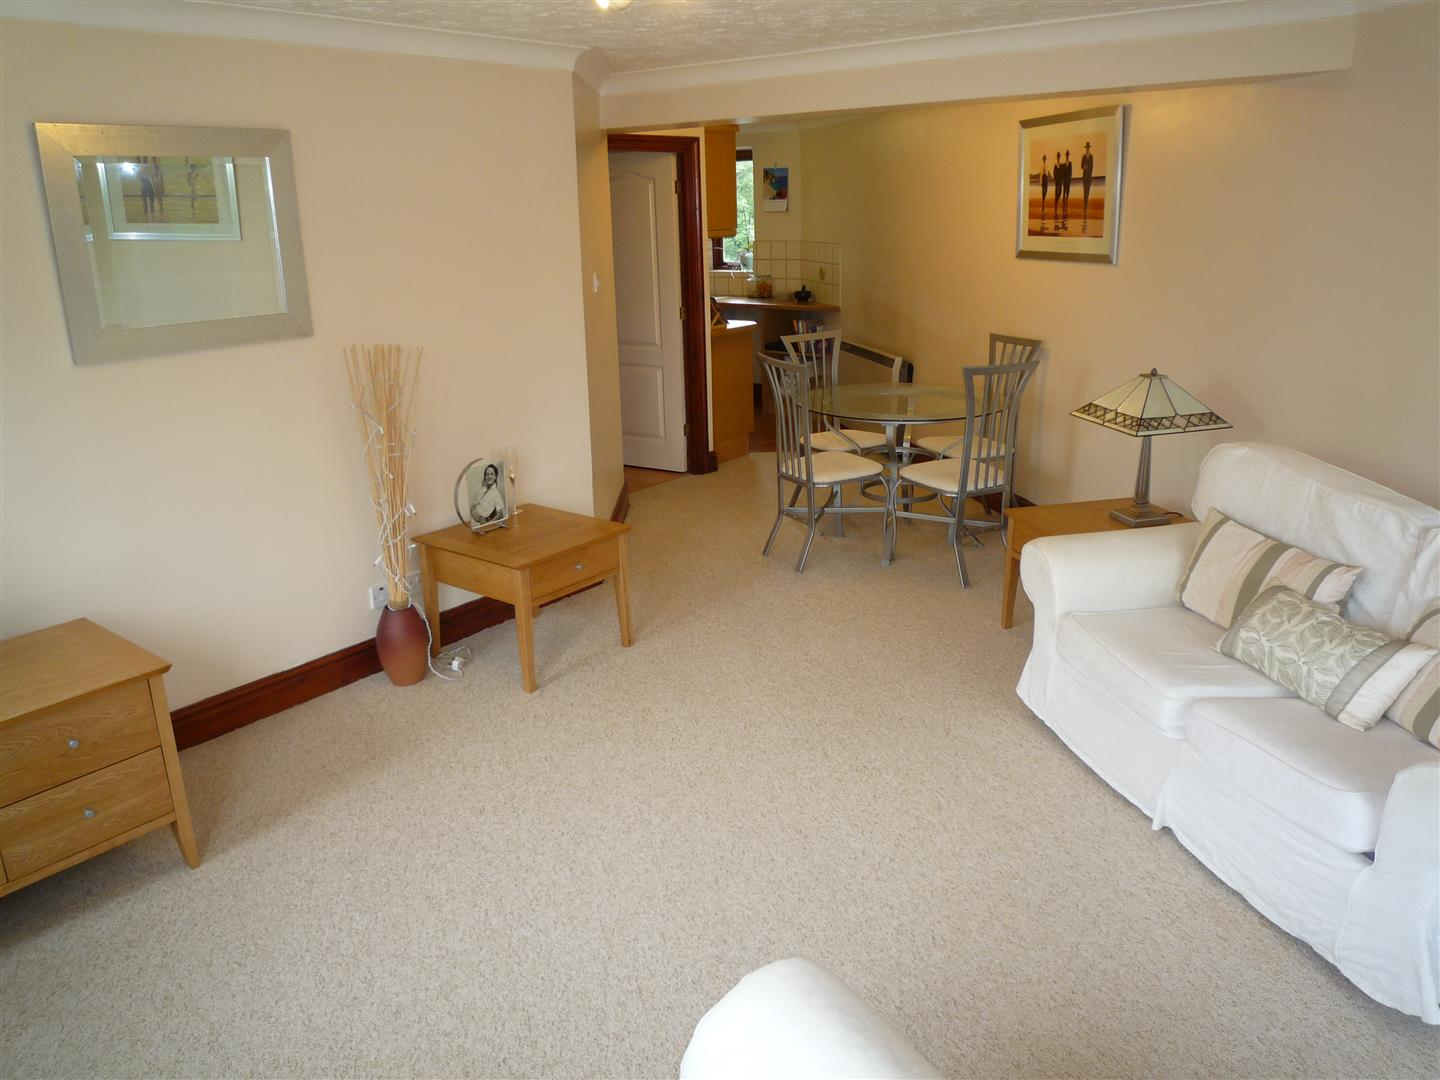 2 bed flat to rent in Long Sutton Spalding, PE12 9RL  - Property Image 2